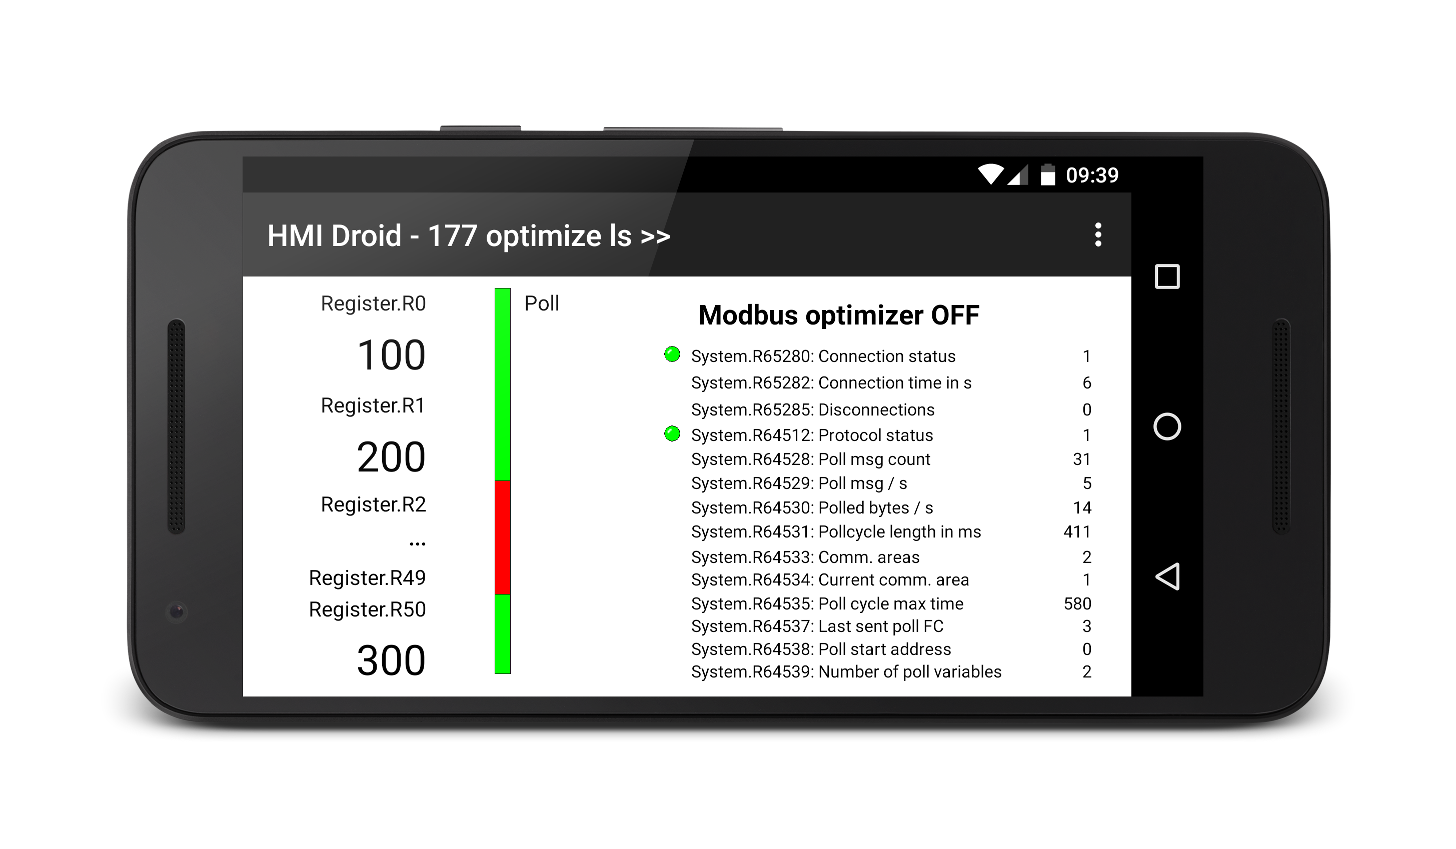 HMI Droid - Optimizer off